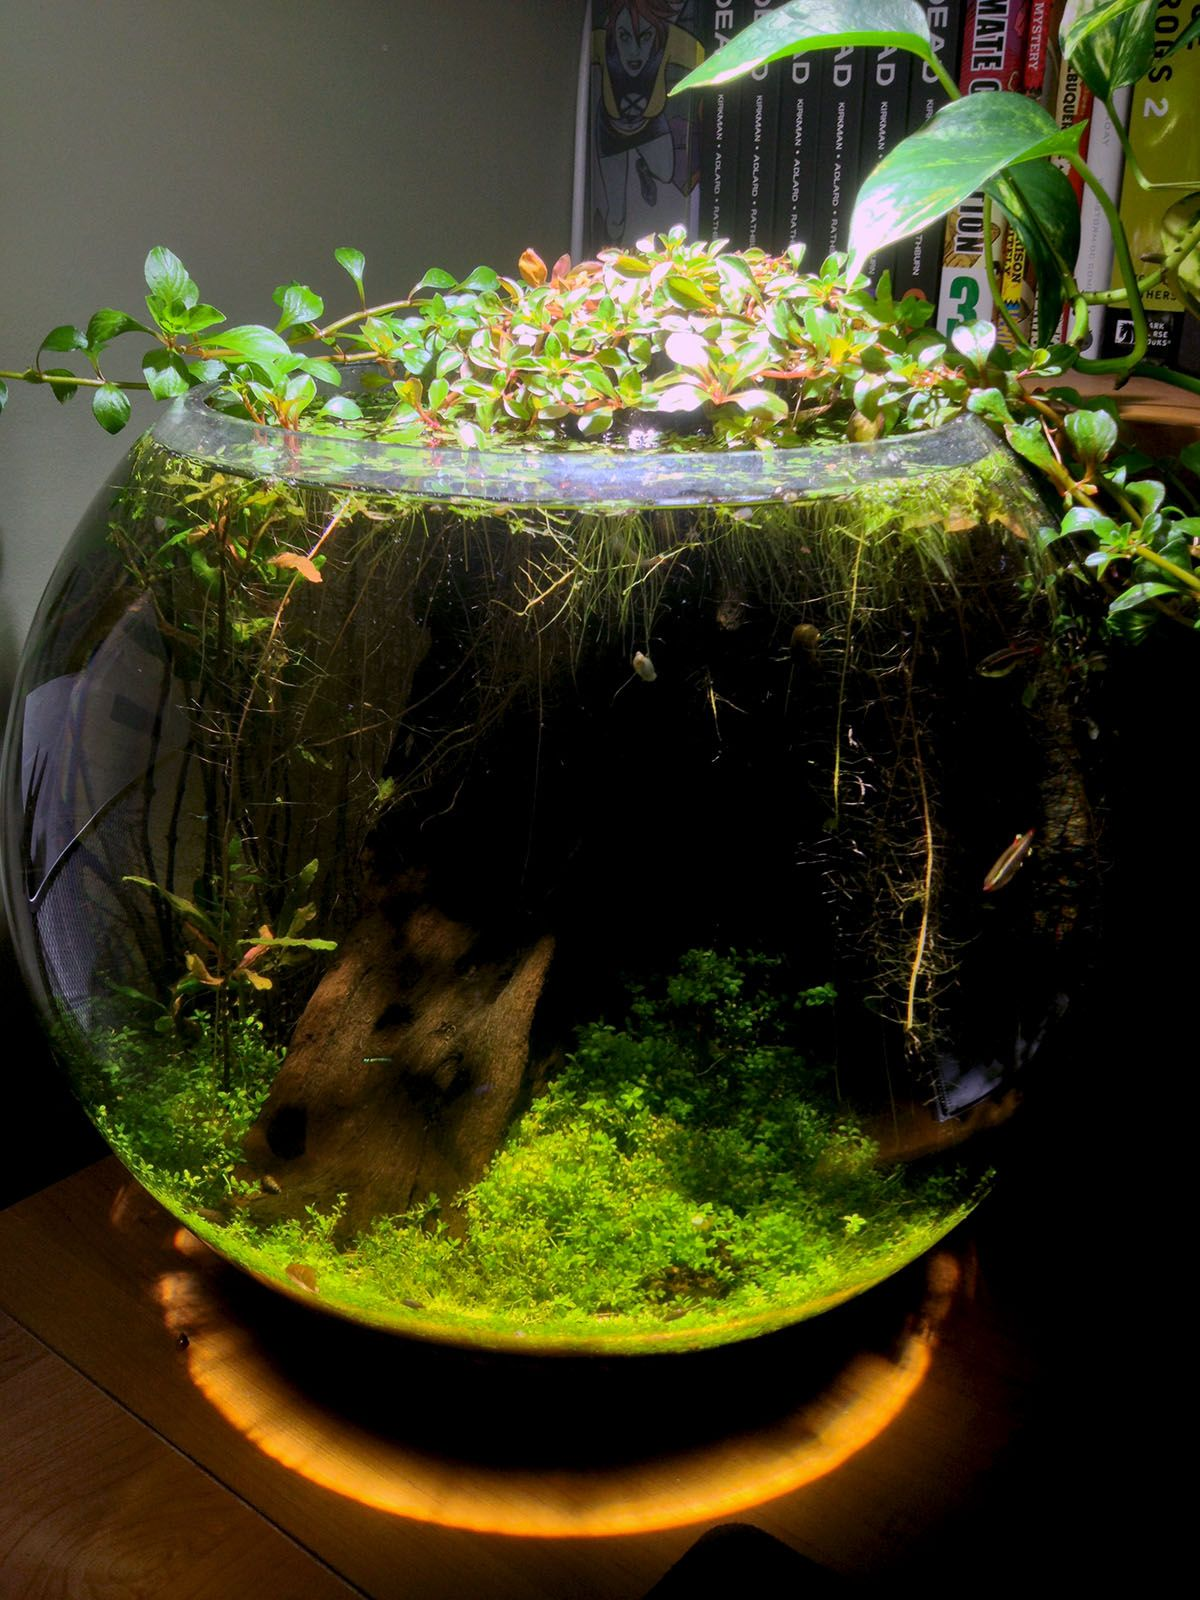 Pin by Jerry Davis on Jerry's board   Aquarium, Planted